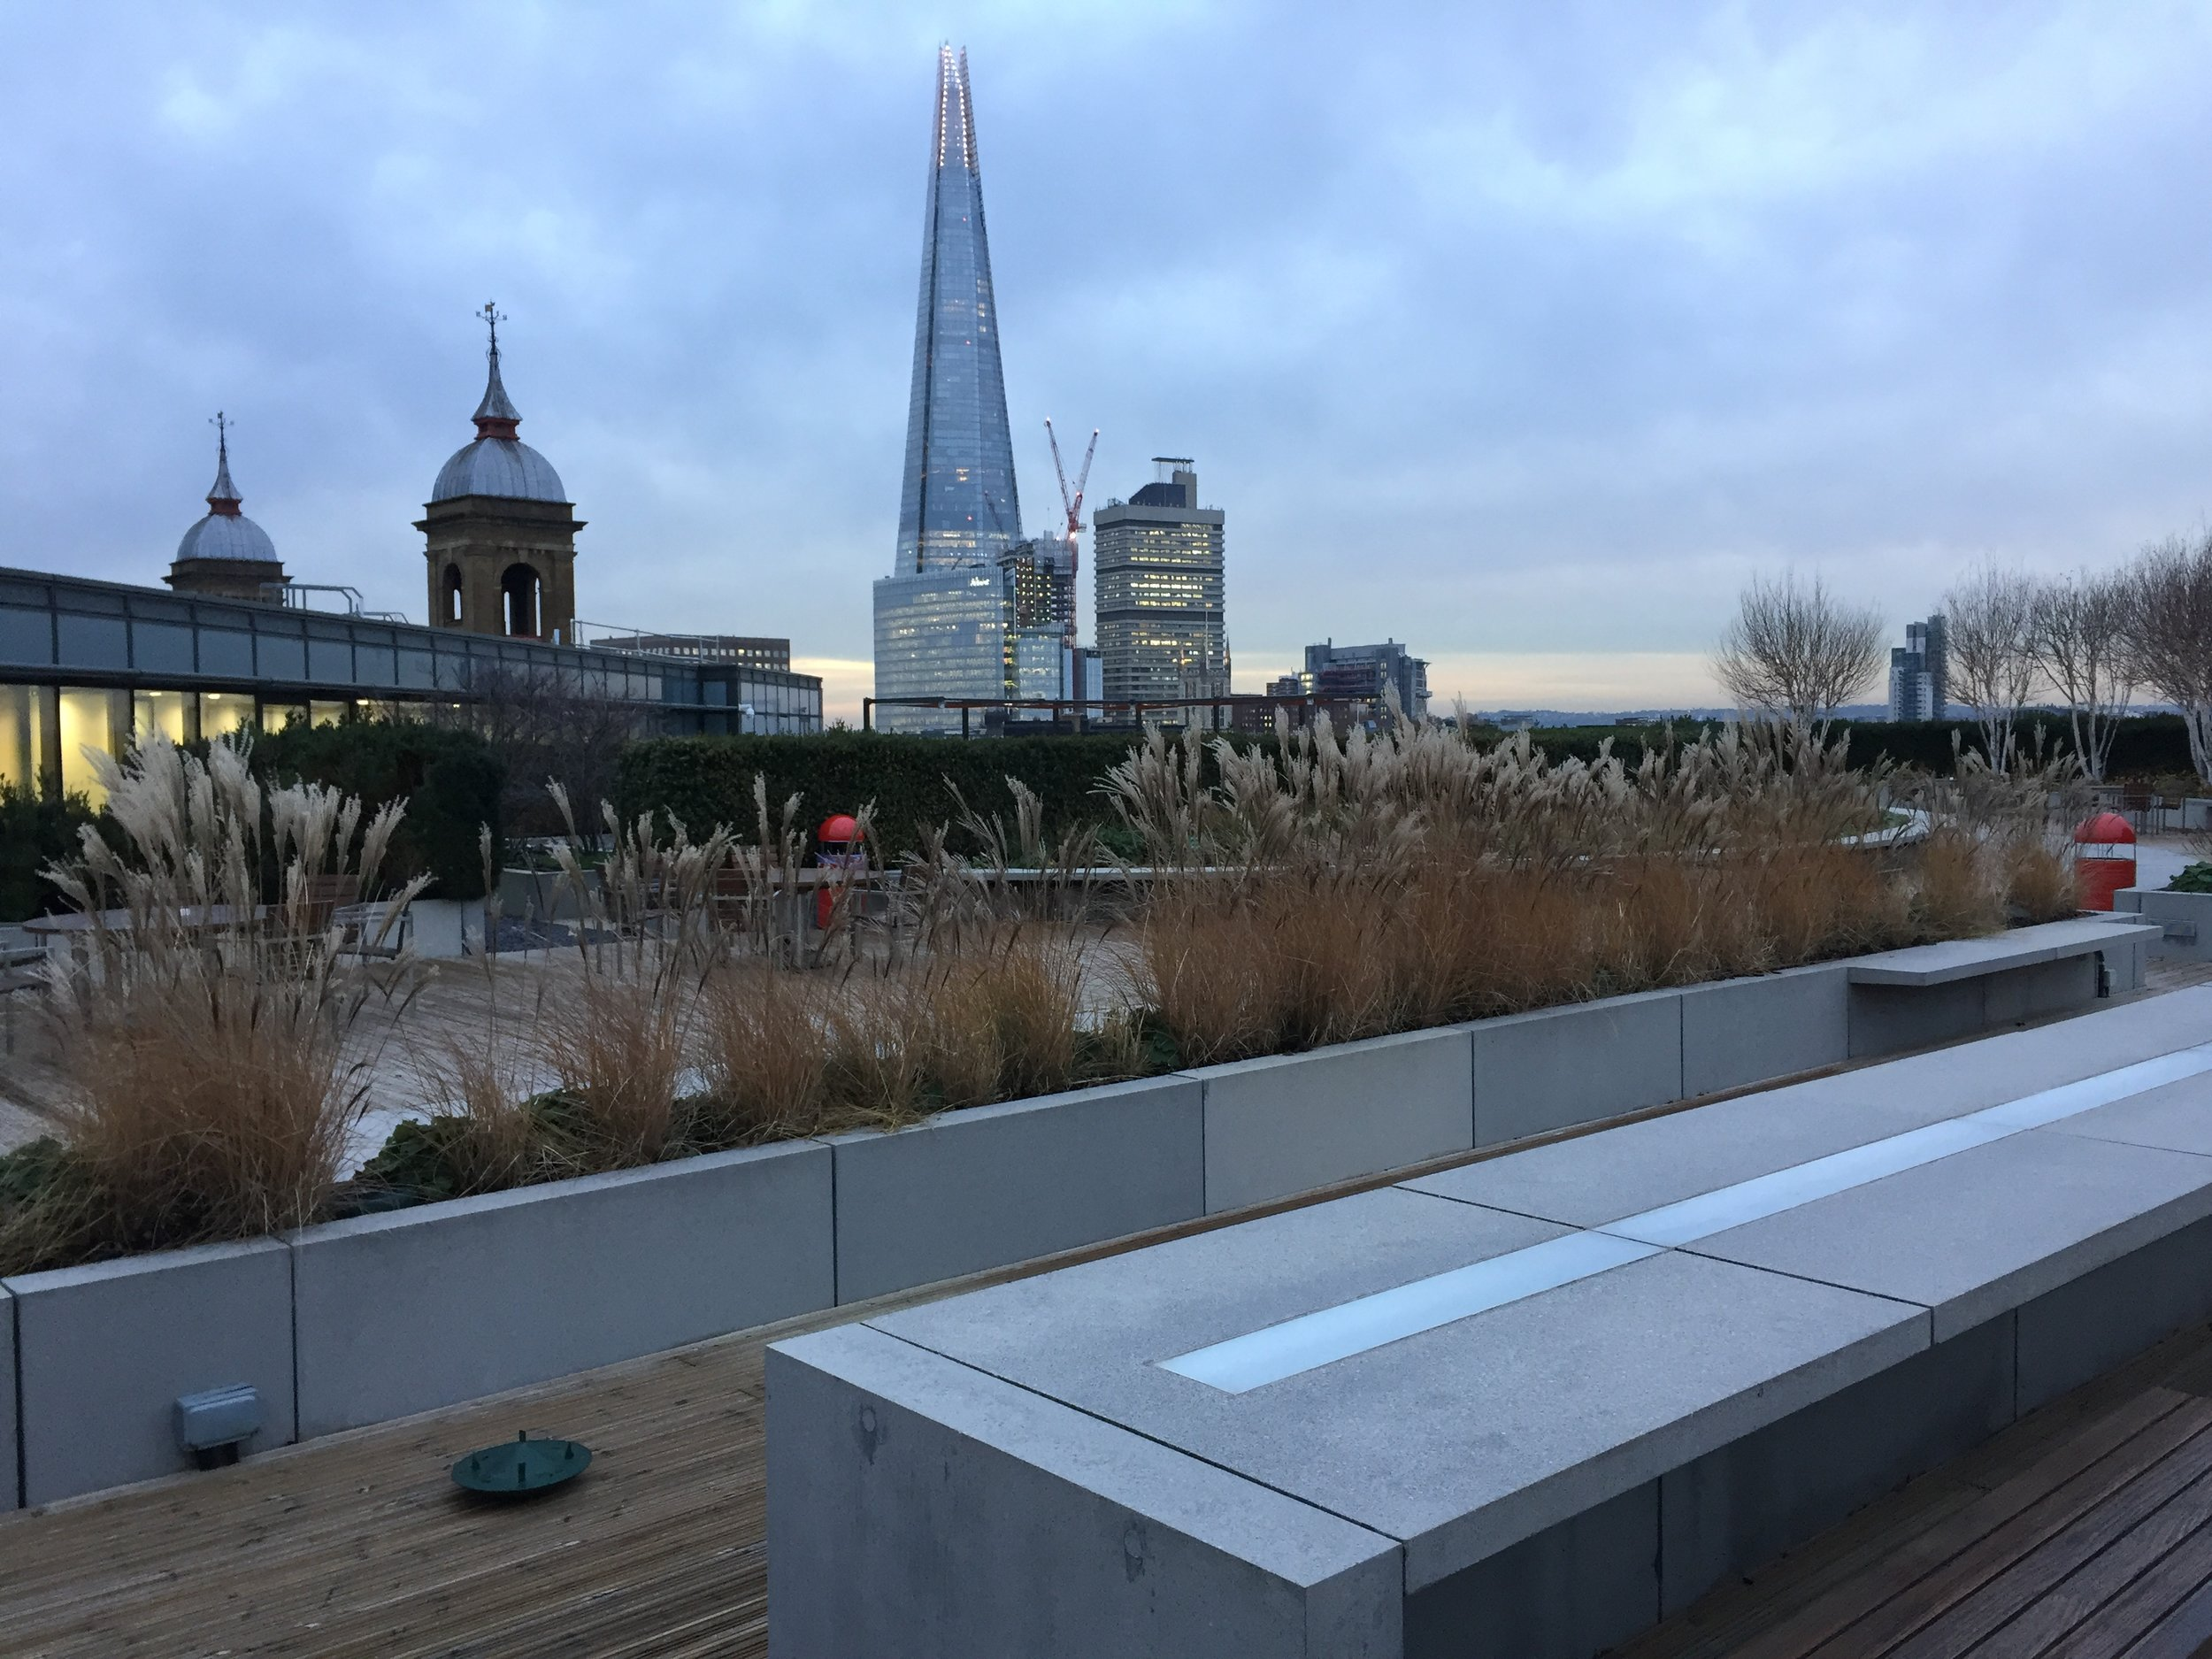 Stunning Rooftop Views at Queen Street Place - PLACE provided a new landscape design for the redeveloped roof terrace at Queen Street Place. Located on the banks of the Thames in the City of London, it is the perfect setting to enjoy views of the city in the winter evening light.December 2018